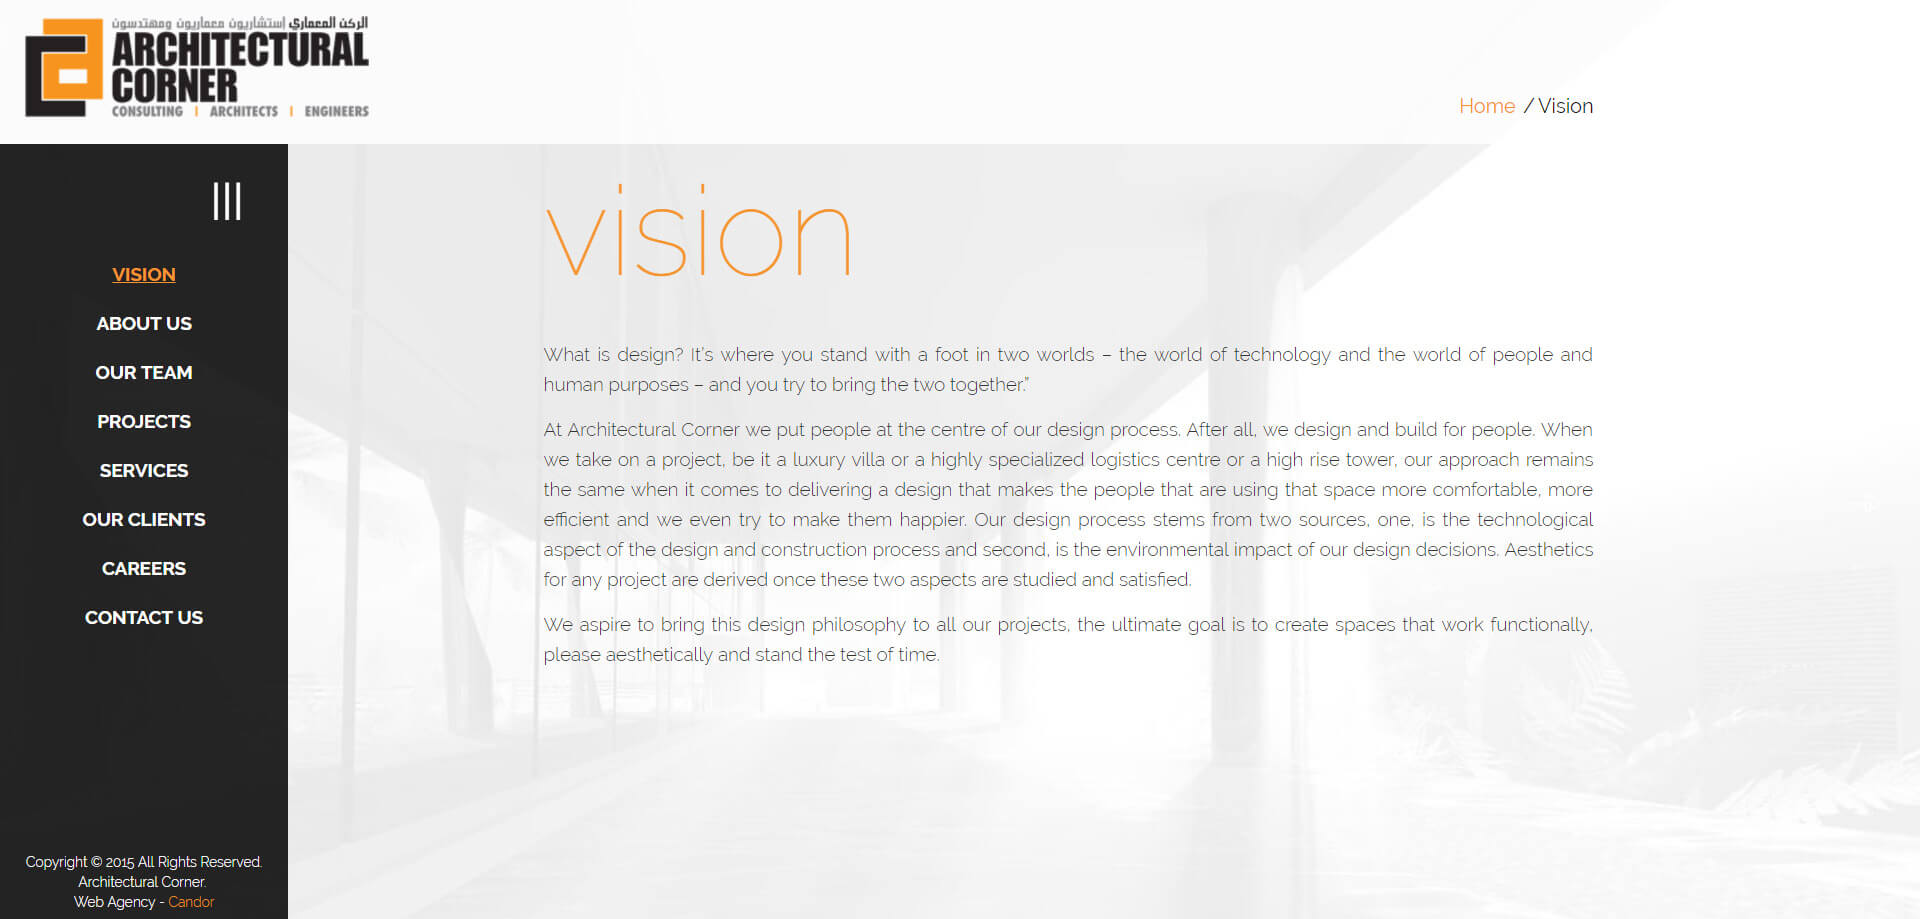 architectural corner vision design with navigation